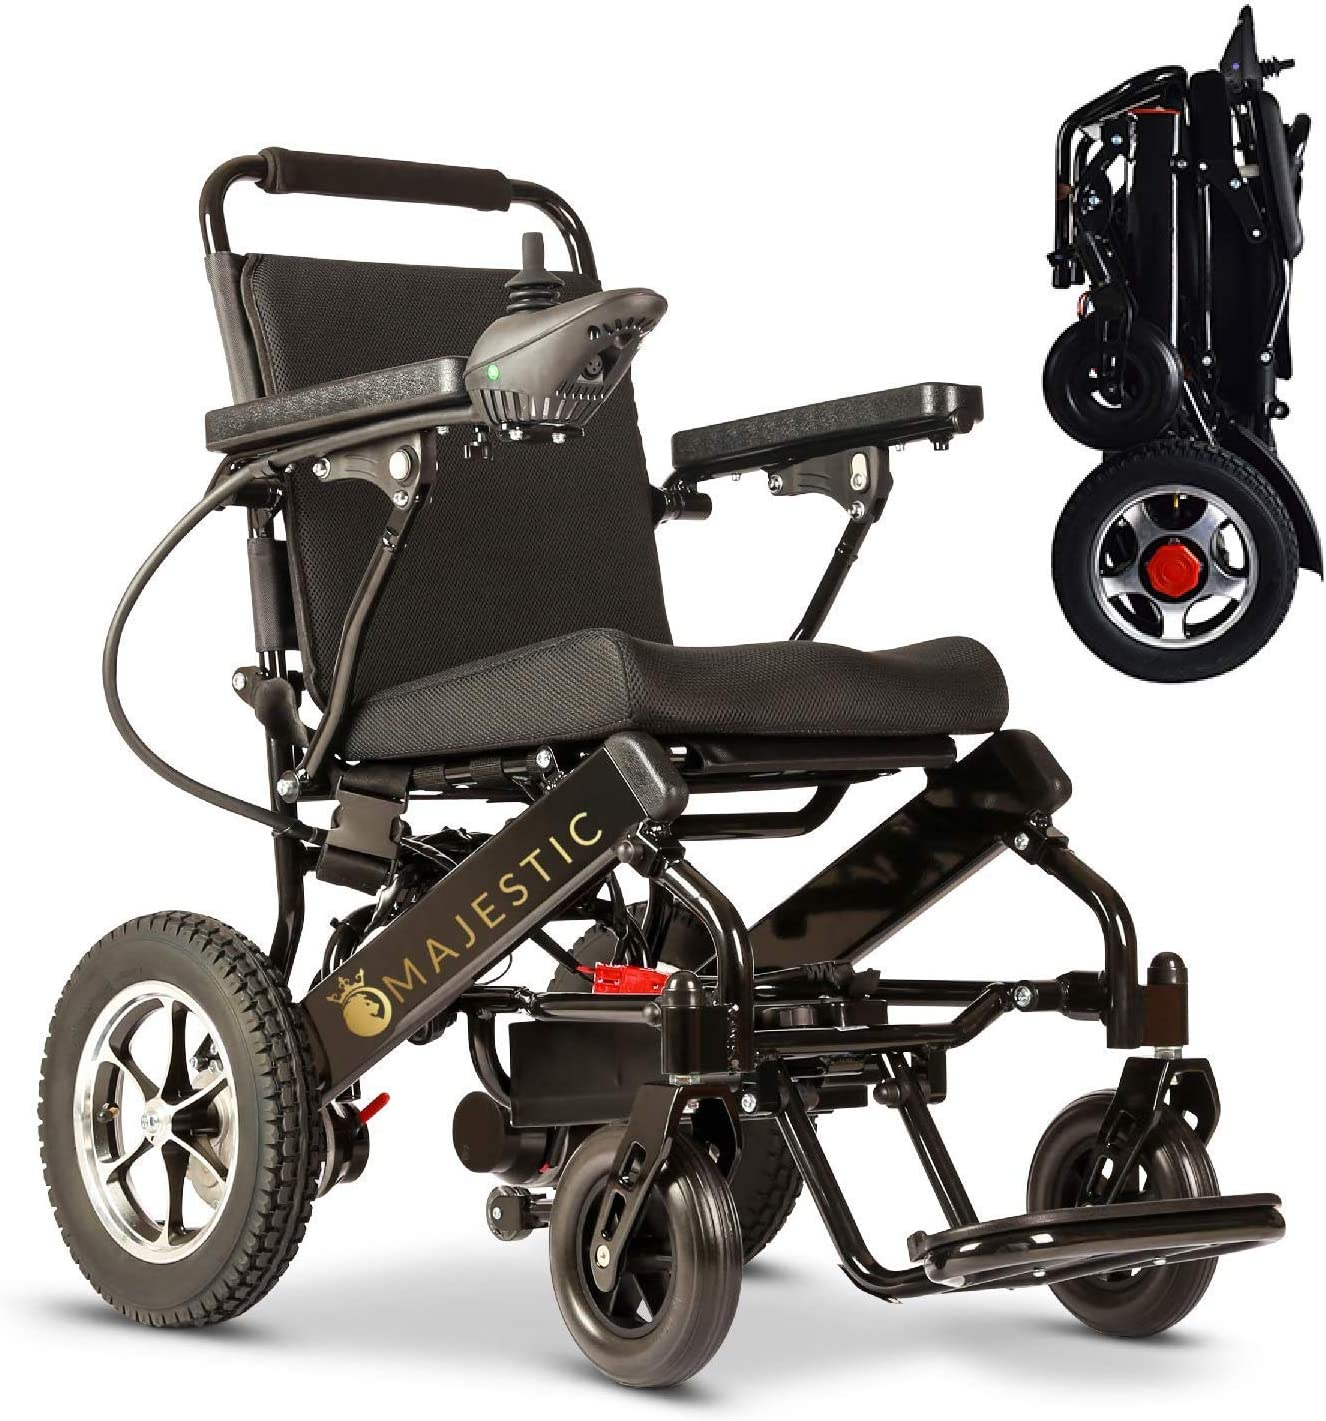 Hawk Mobility 2021 Max 72% OFF Model Heavy Ultra Exclusive Lightweight Duty Selling rankings